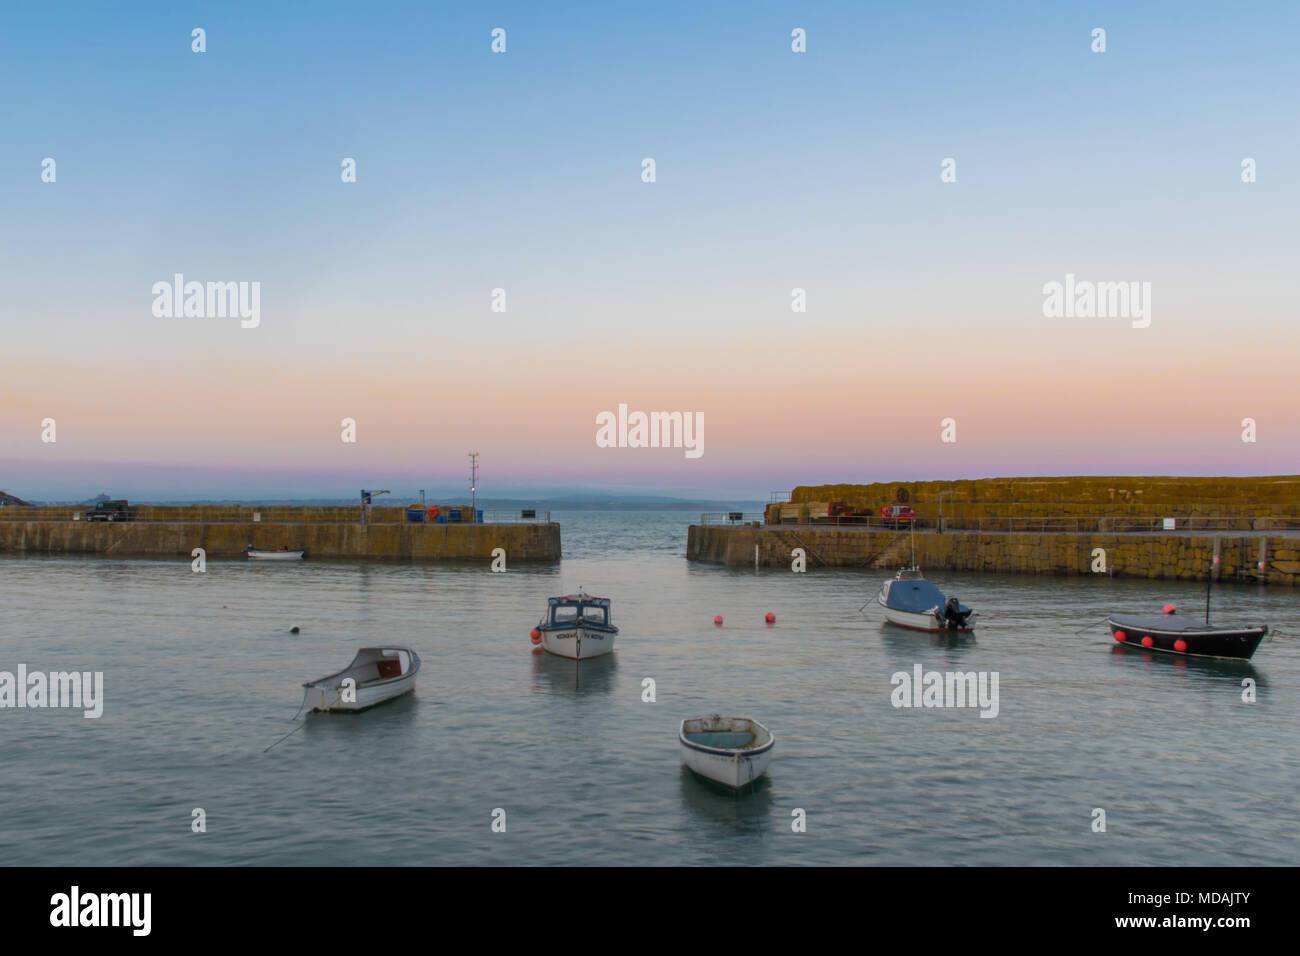 Mousehole, Cornwall, UK. 19th April 2018. UK Weather. The mist and fig didn't lift from the south west of Cornwall until around 3pm today, when it did it was clear skies all the way upto sunset. Credit: Simon Maycock/Alamy Live News - Stock Image